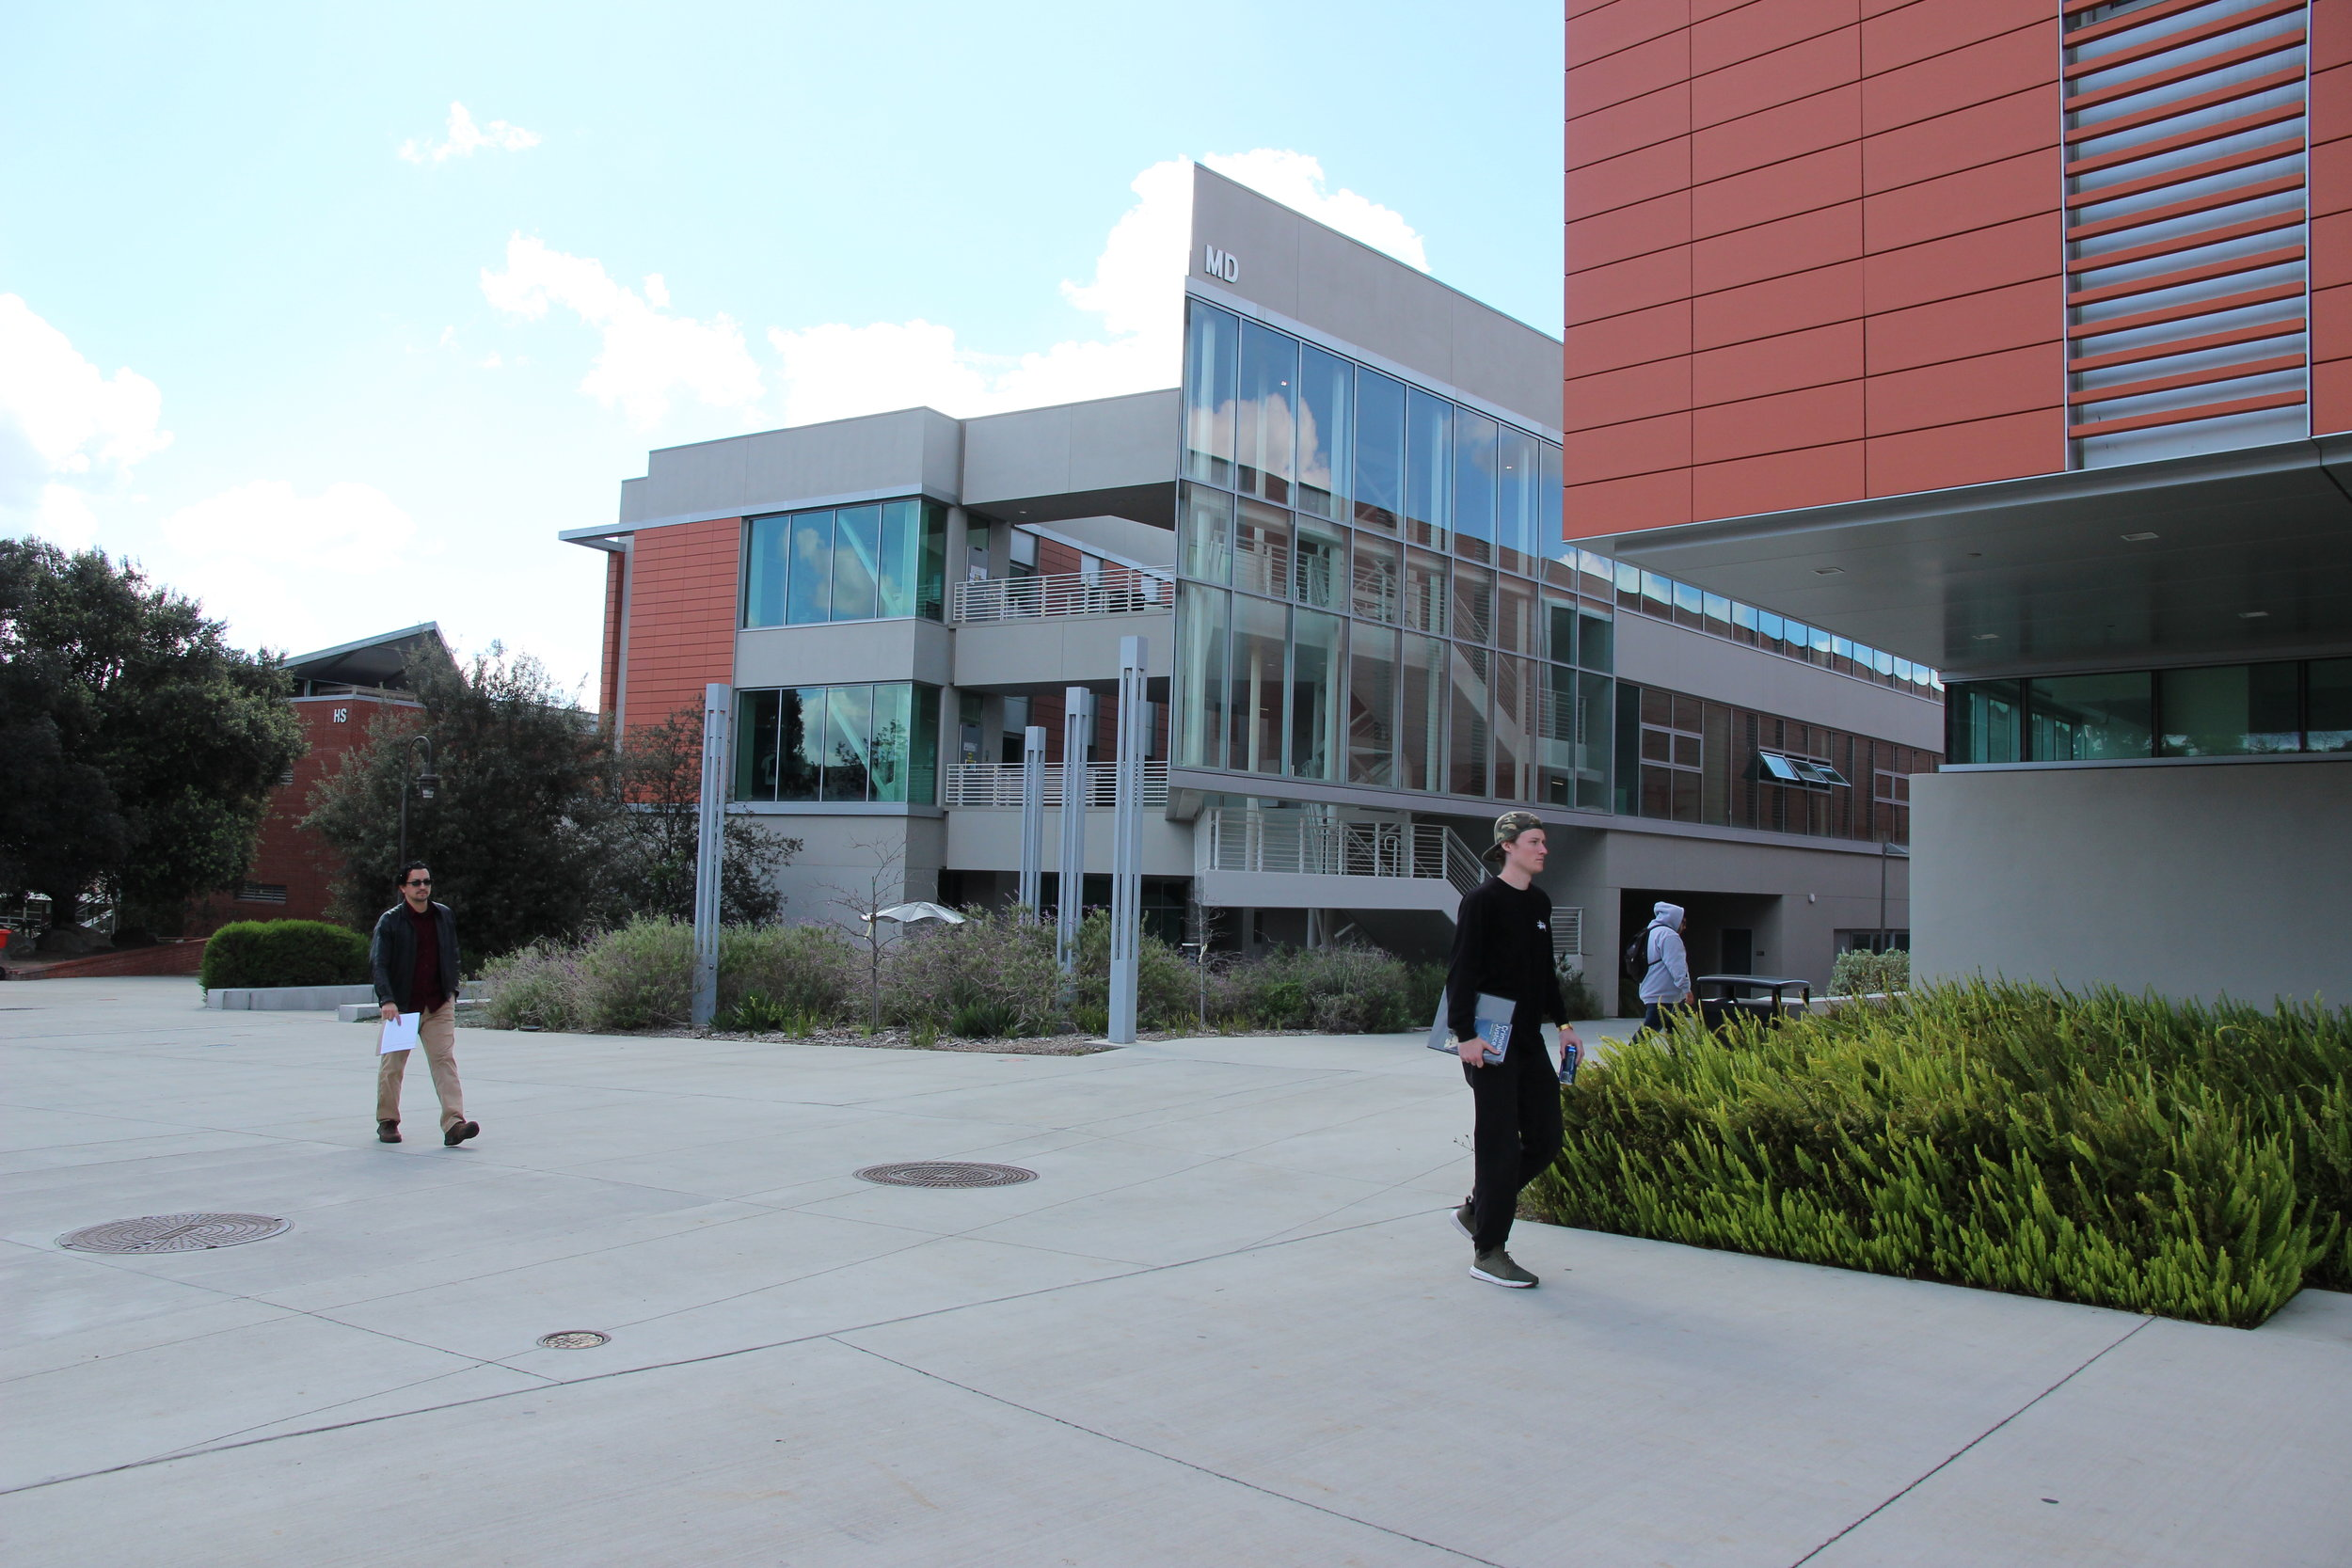 PALOMAR COLLEGE: LEARNING RESOURCE CENTER Project Value: $50M